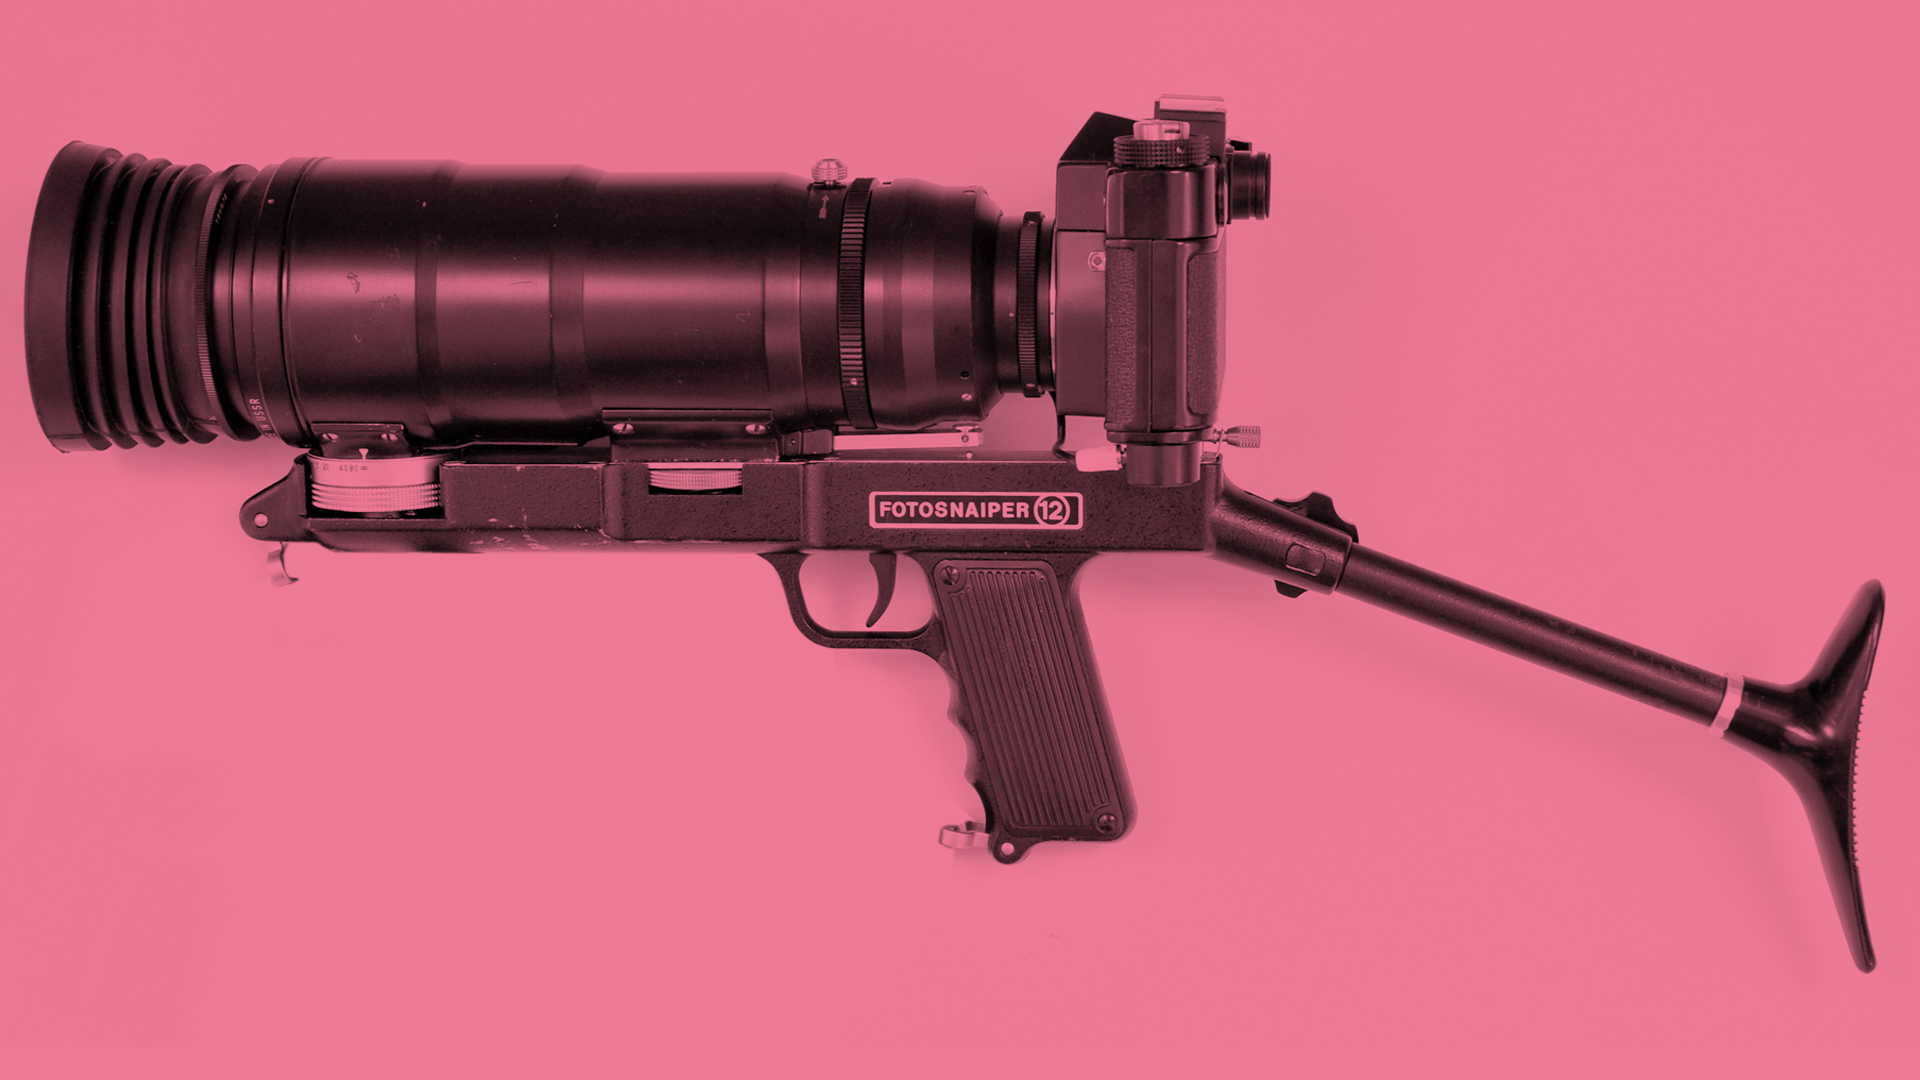 The side of the Zenit Fotosniper camera on a pink background